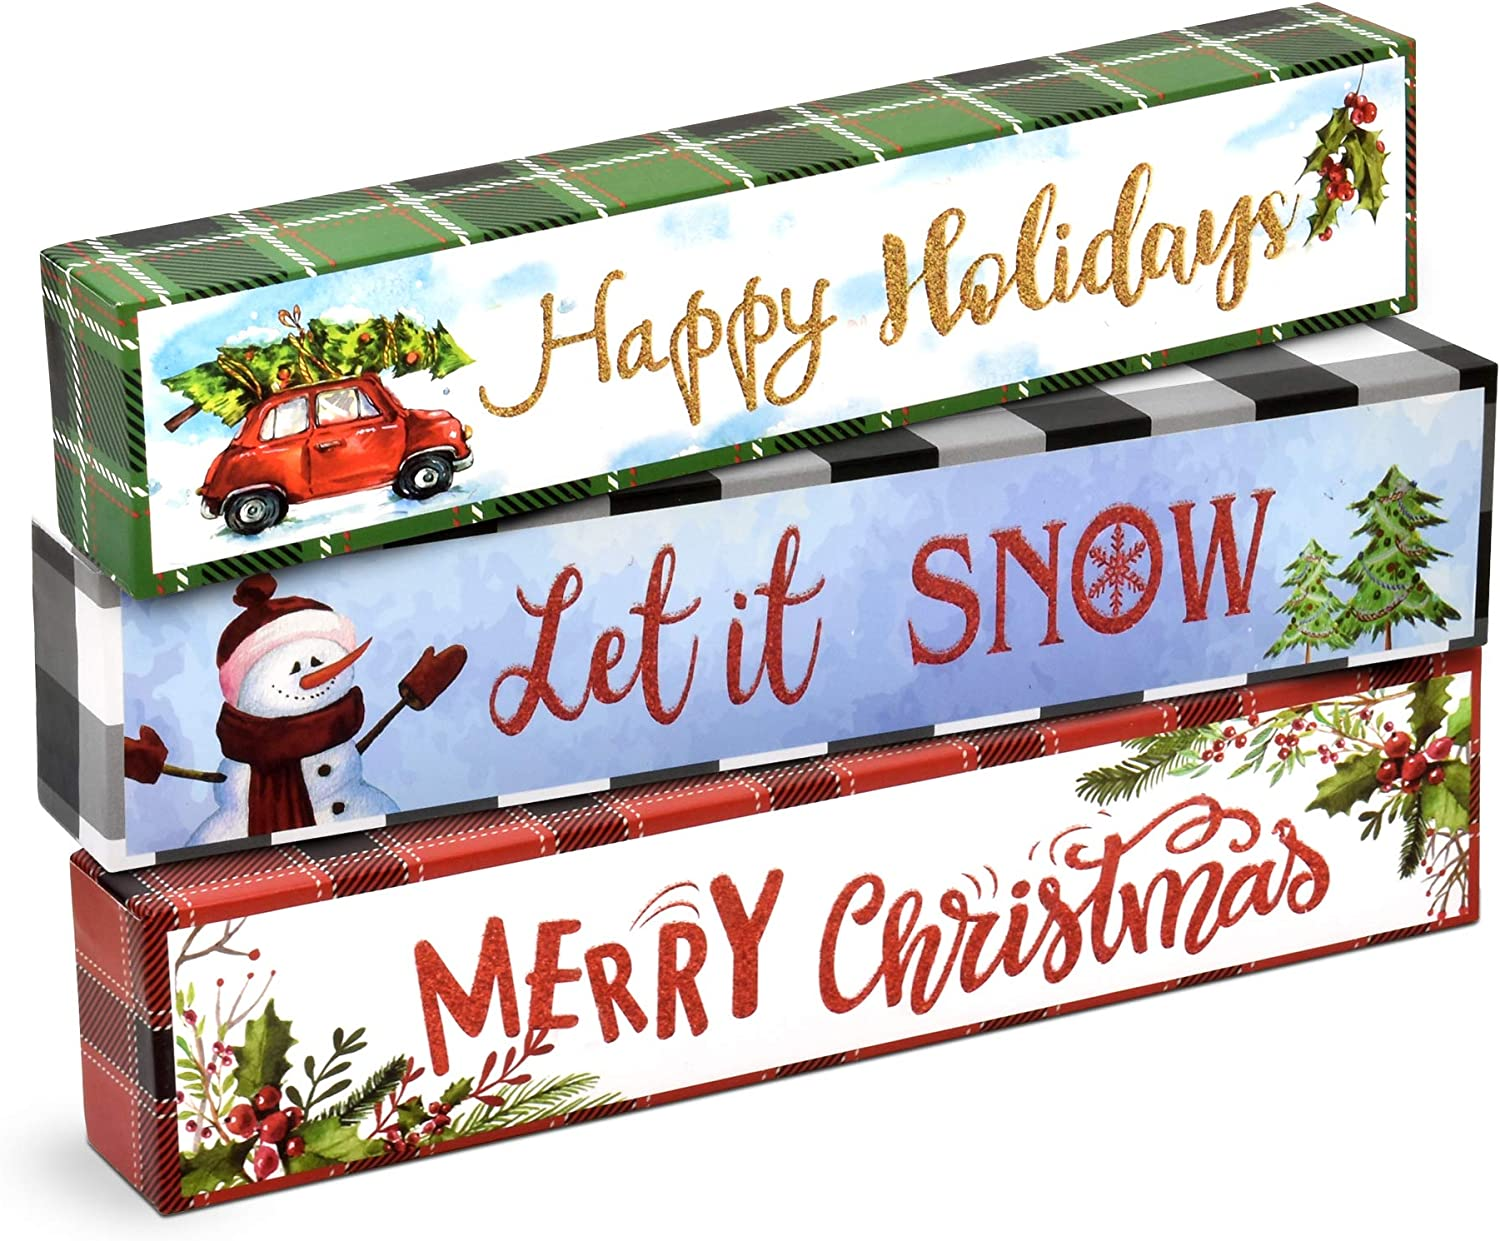 Christmas Table Decorations Set of 3 Table Topper Centerpiece for Office Desk Shelf Mantle Top Kitchen Counter Home Holiday Party Decor Snowman Winter Merry Christmas Happy Holidays Let it Snow Design